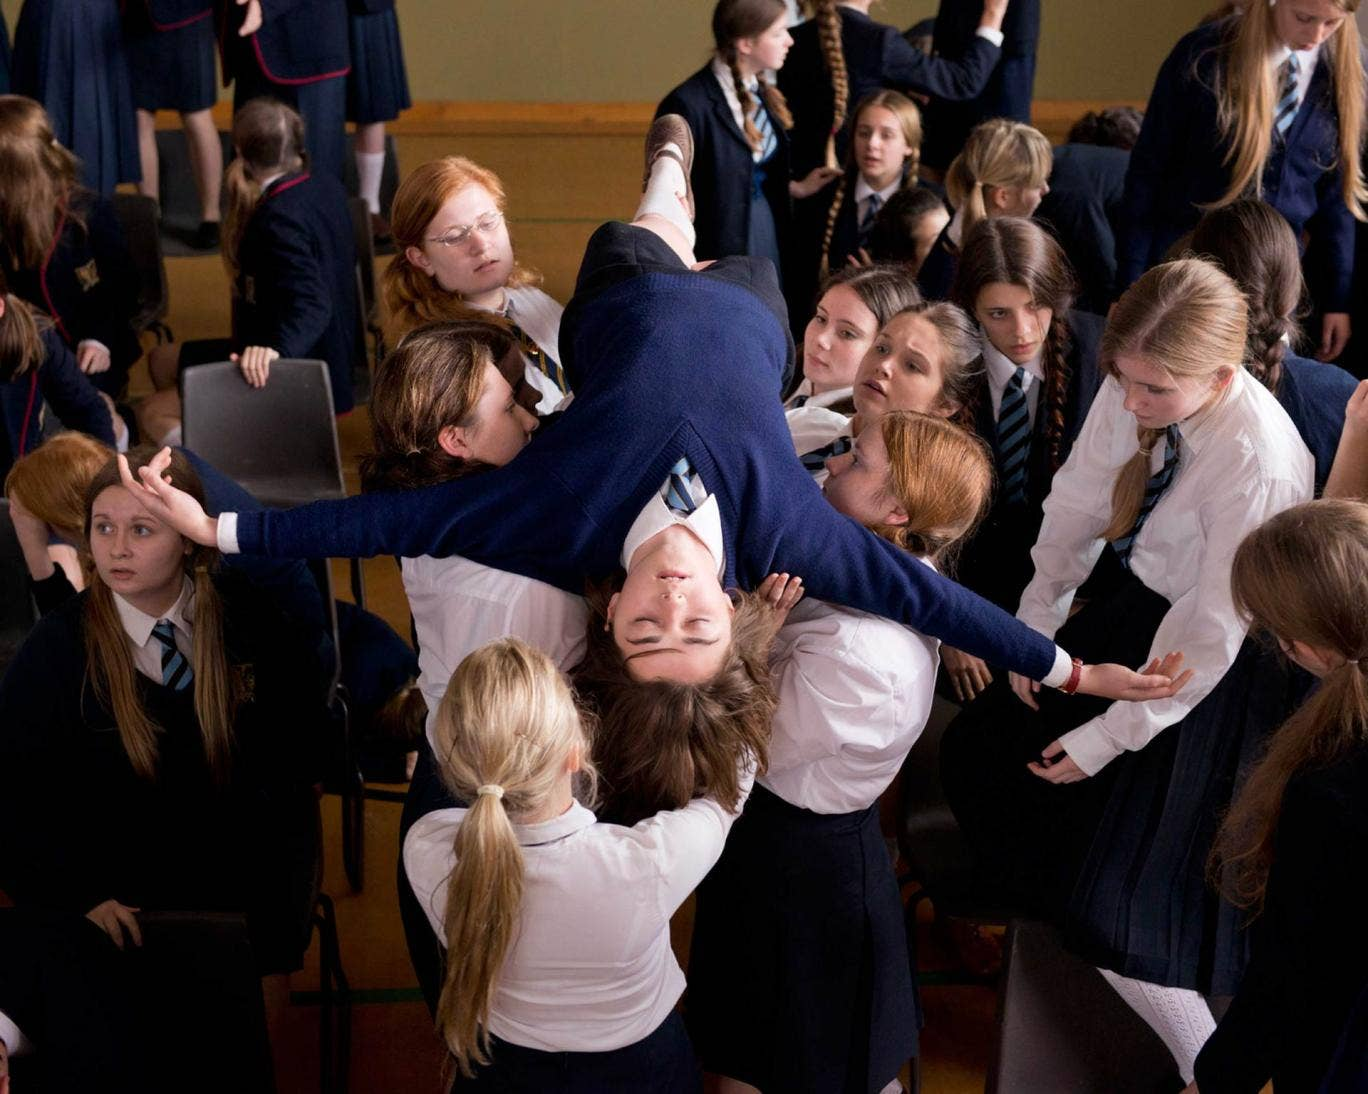 Mysterious Mass Fainting Affects 40 High School Students advise